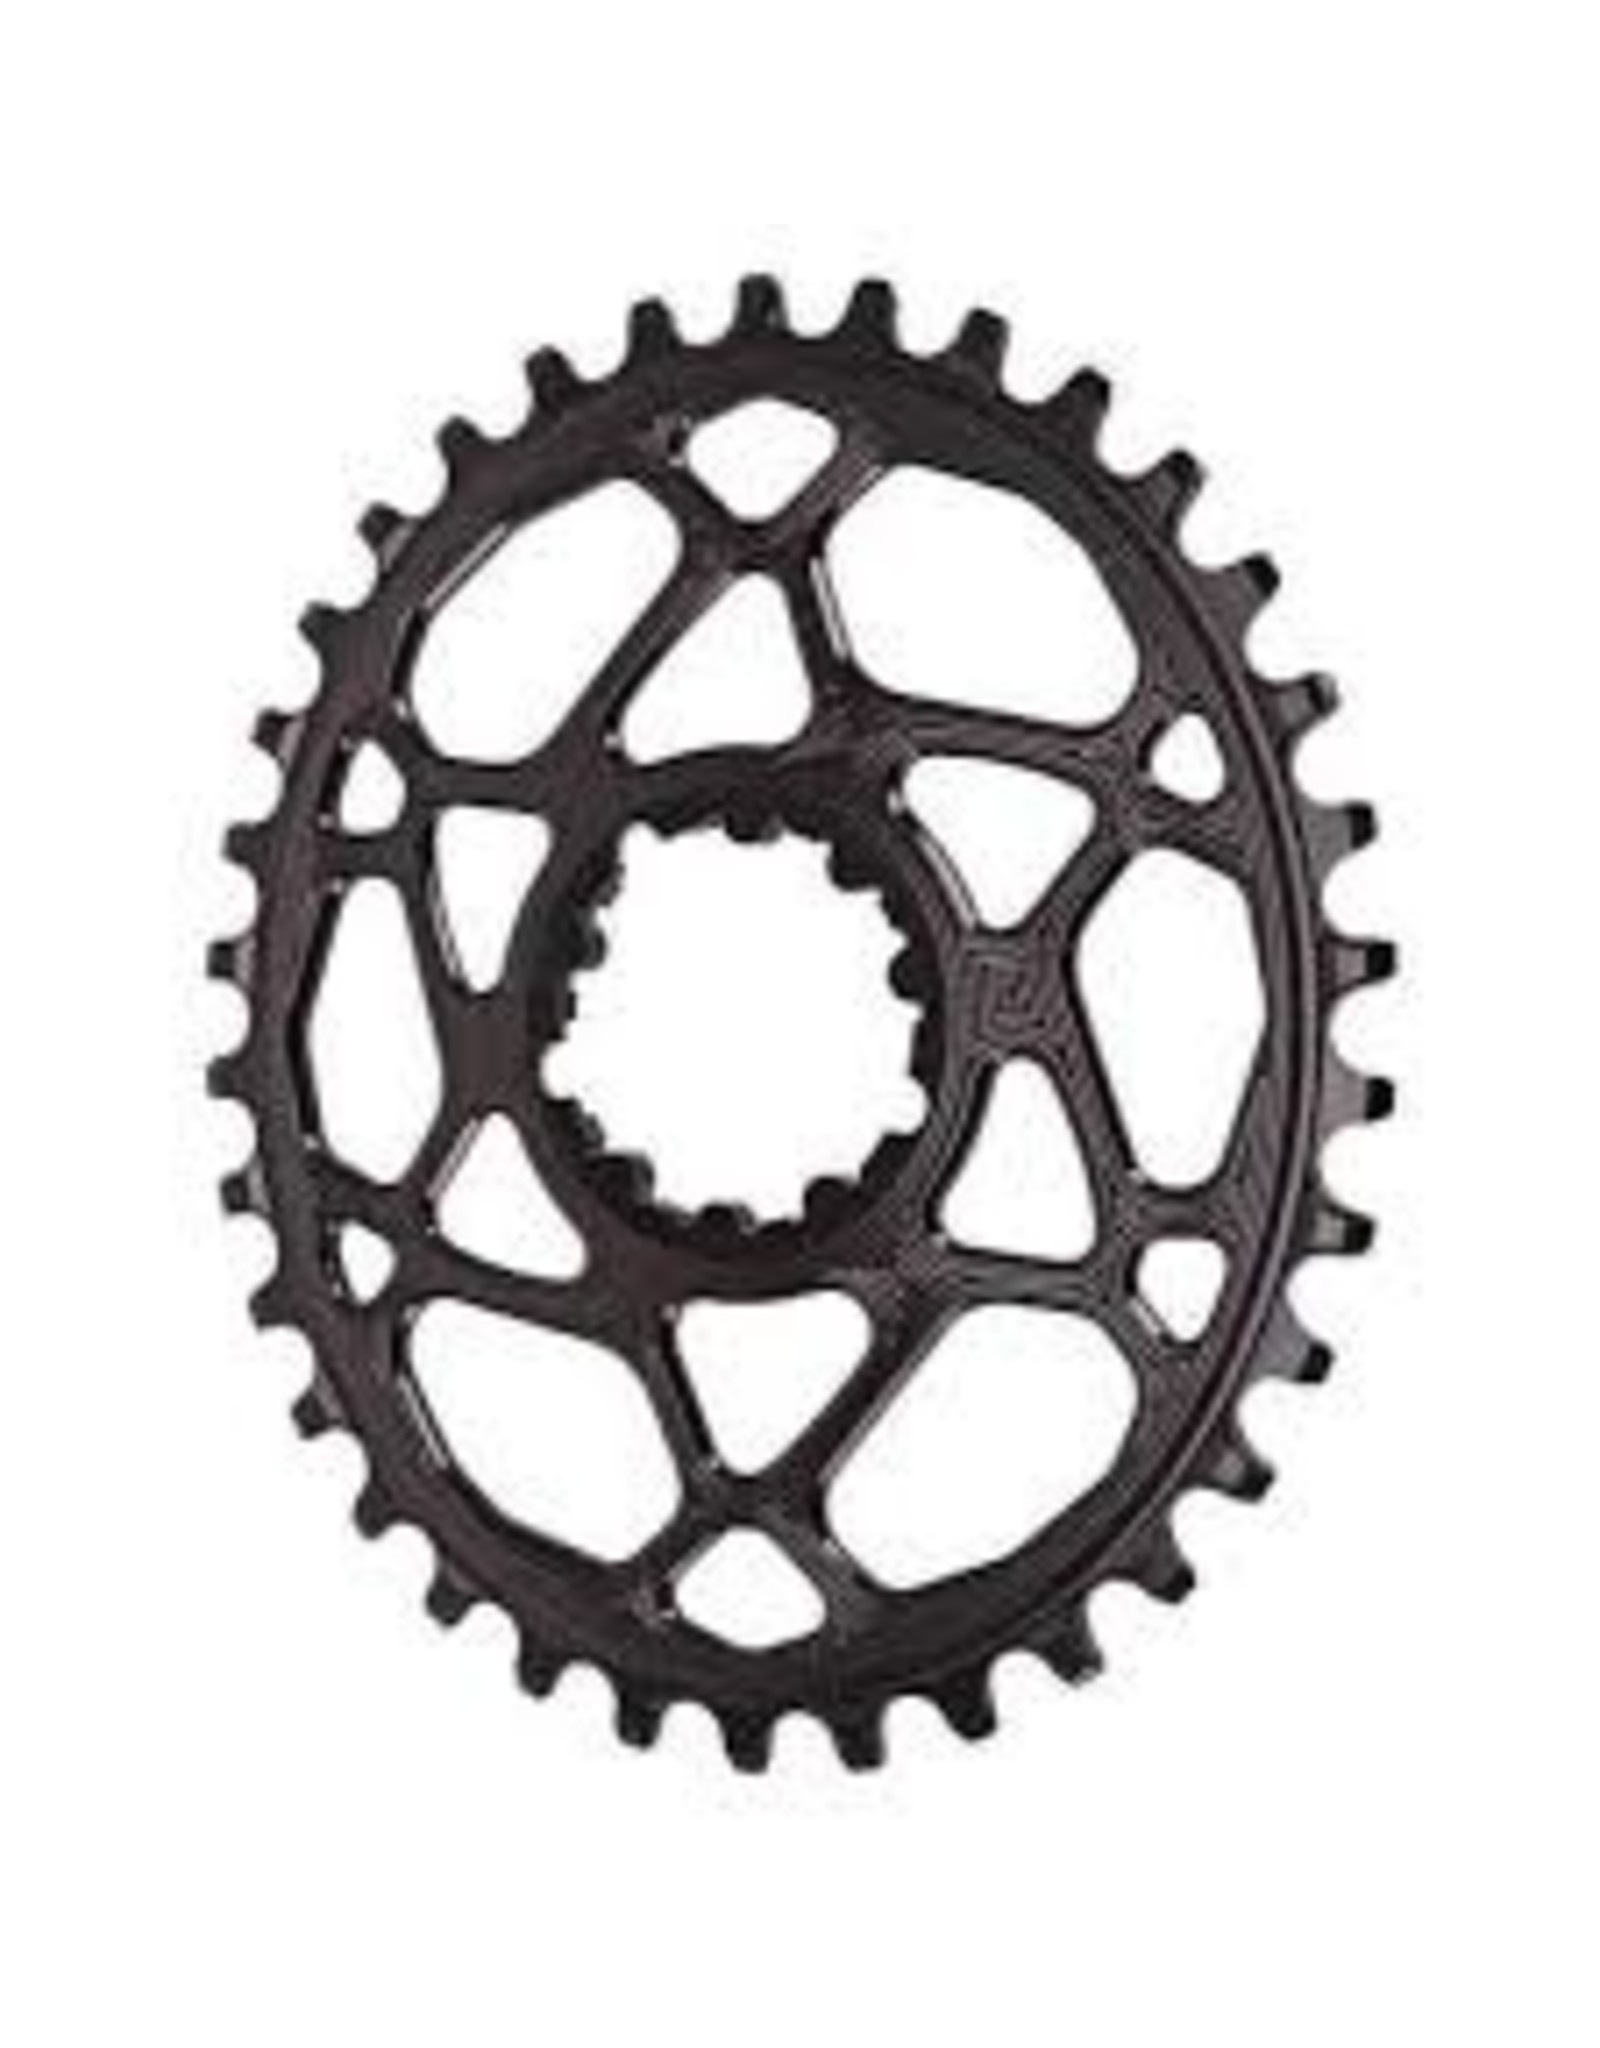 ABSOLUTE BLACK Chainring Absoulute Black Oval Direct Black 28T